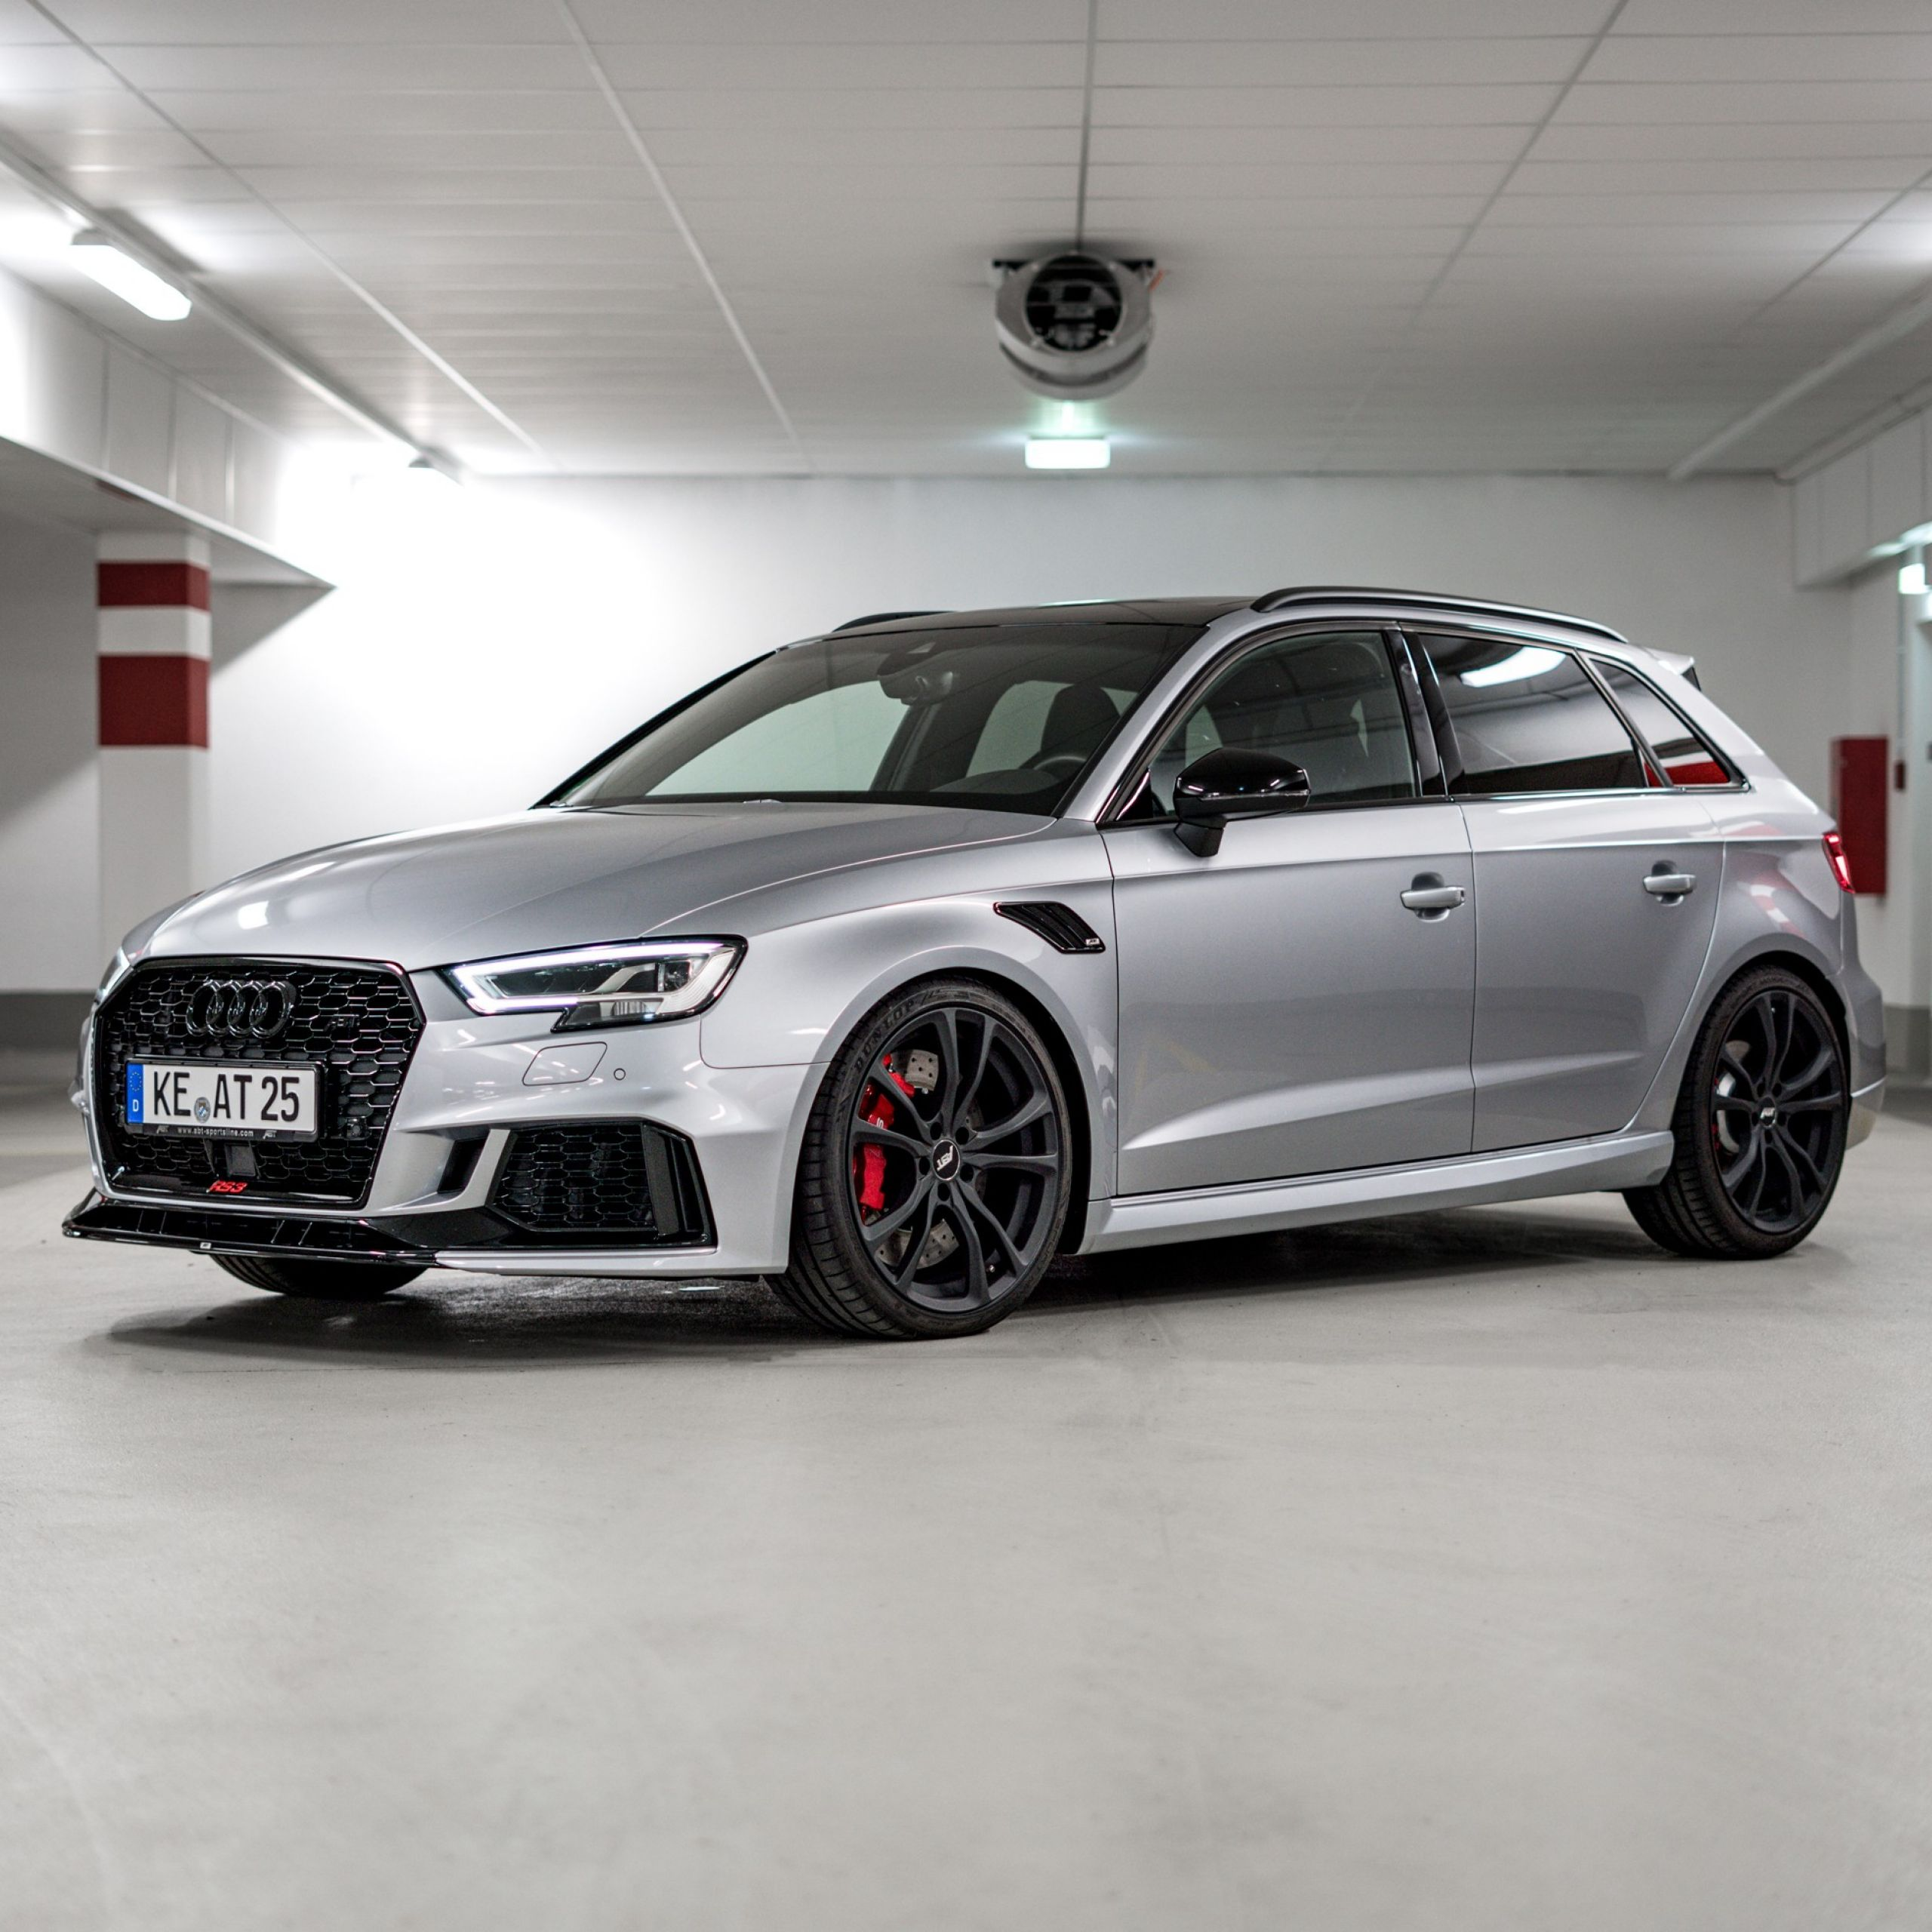 Audi Rs3 for Sale Luxury 2019 Audi Rs3 Hatchback by Abt Sportsline